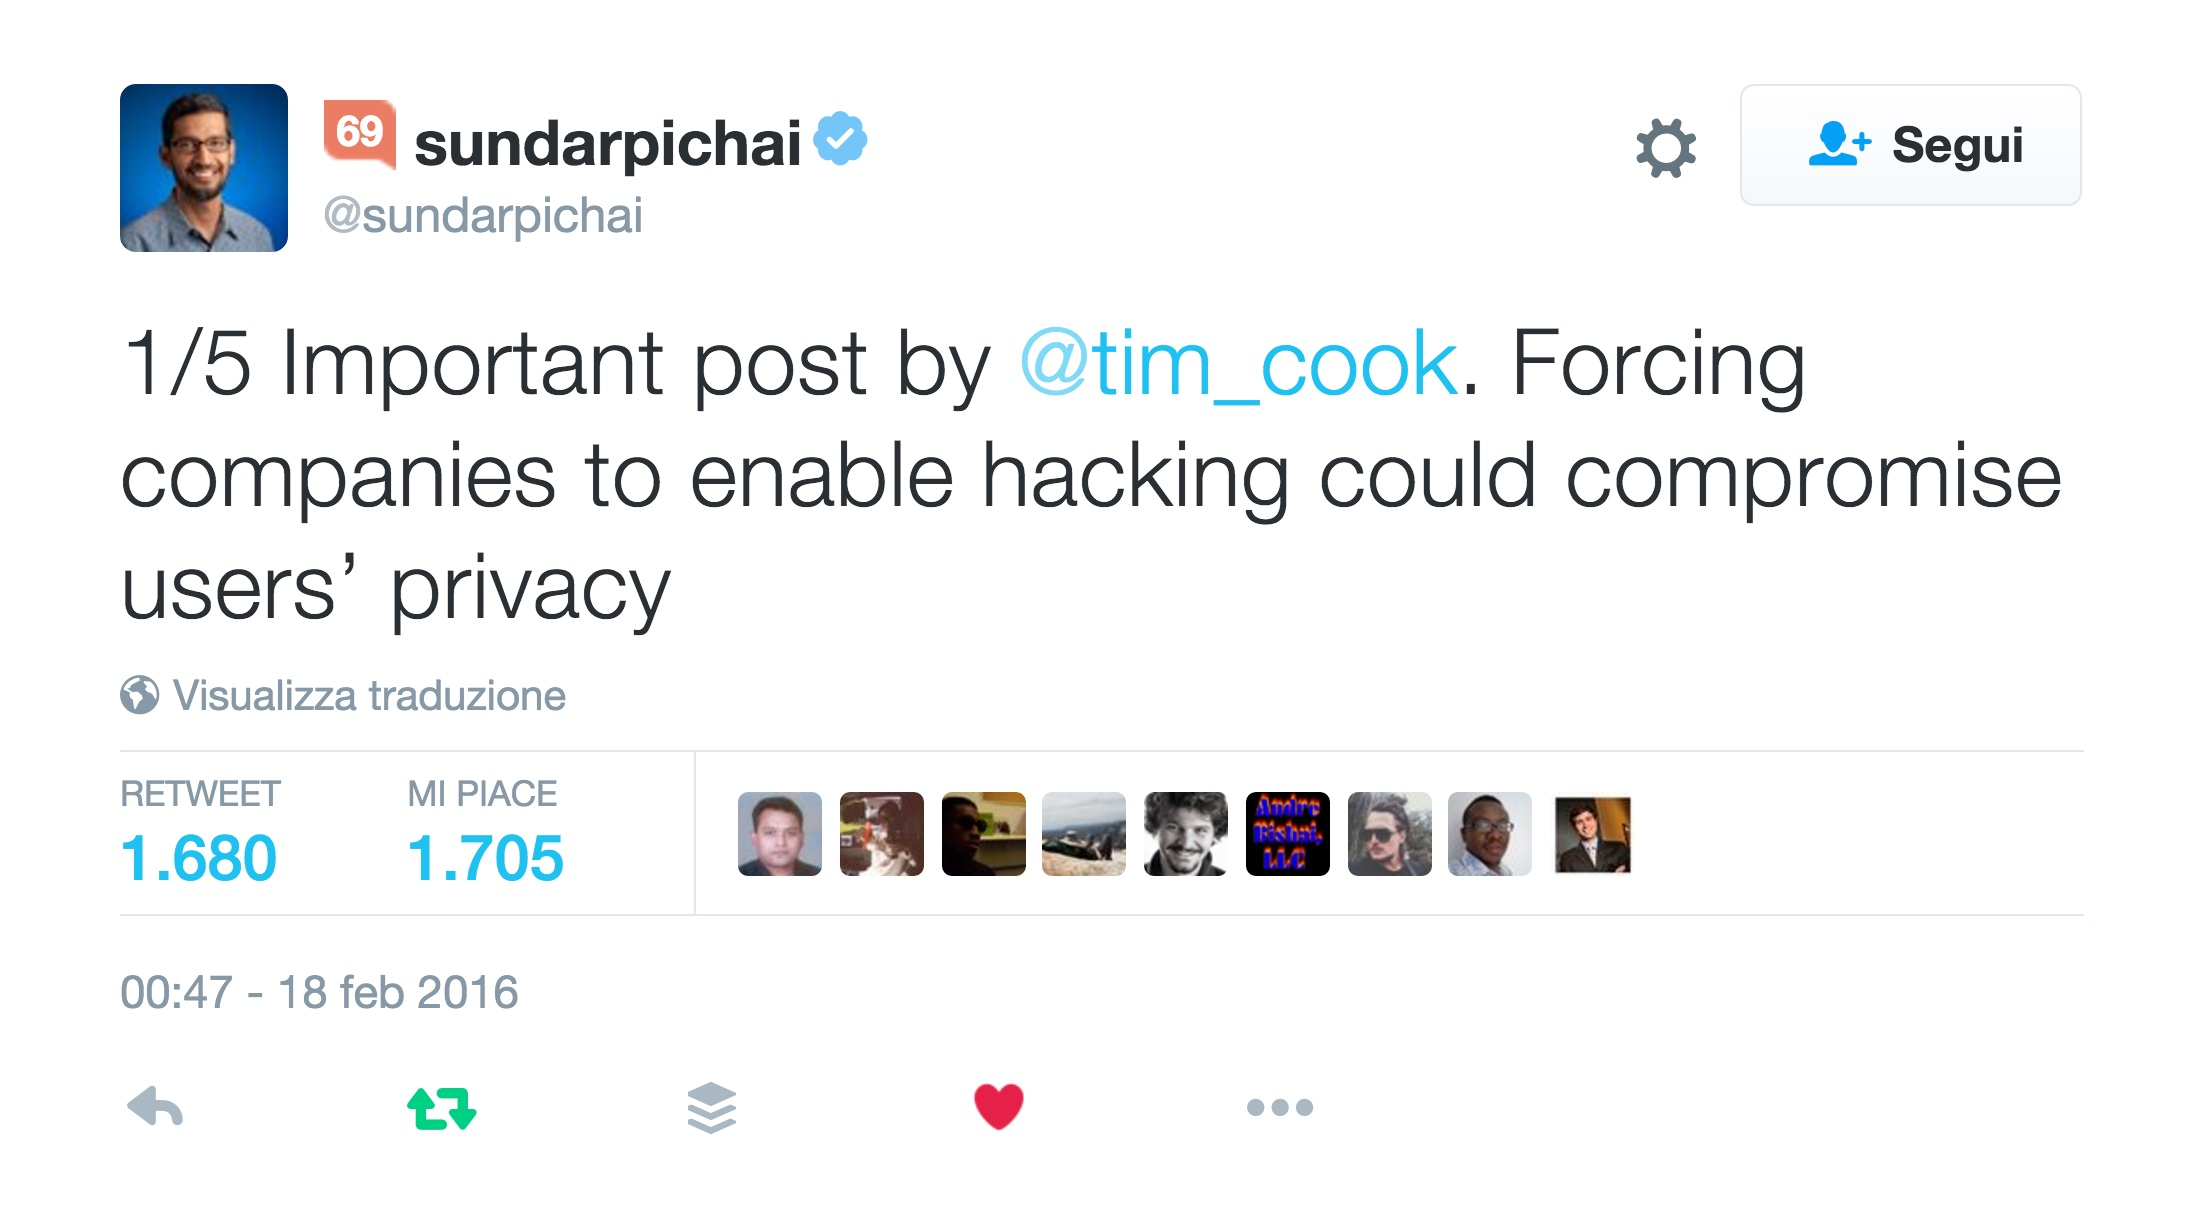 sundarpichai_su_Twitter___1_5_Important_post_by__tim_cook__Forcing_companies_to_enable_hacking_could_compromise_users'_privacy_